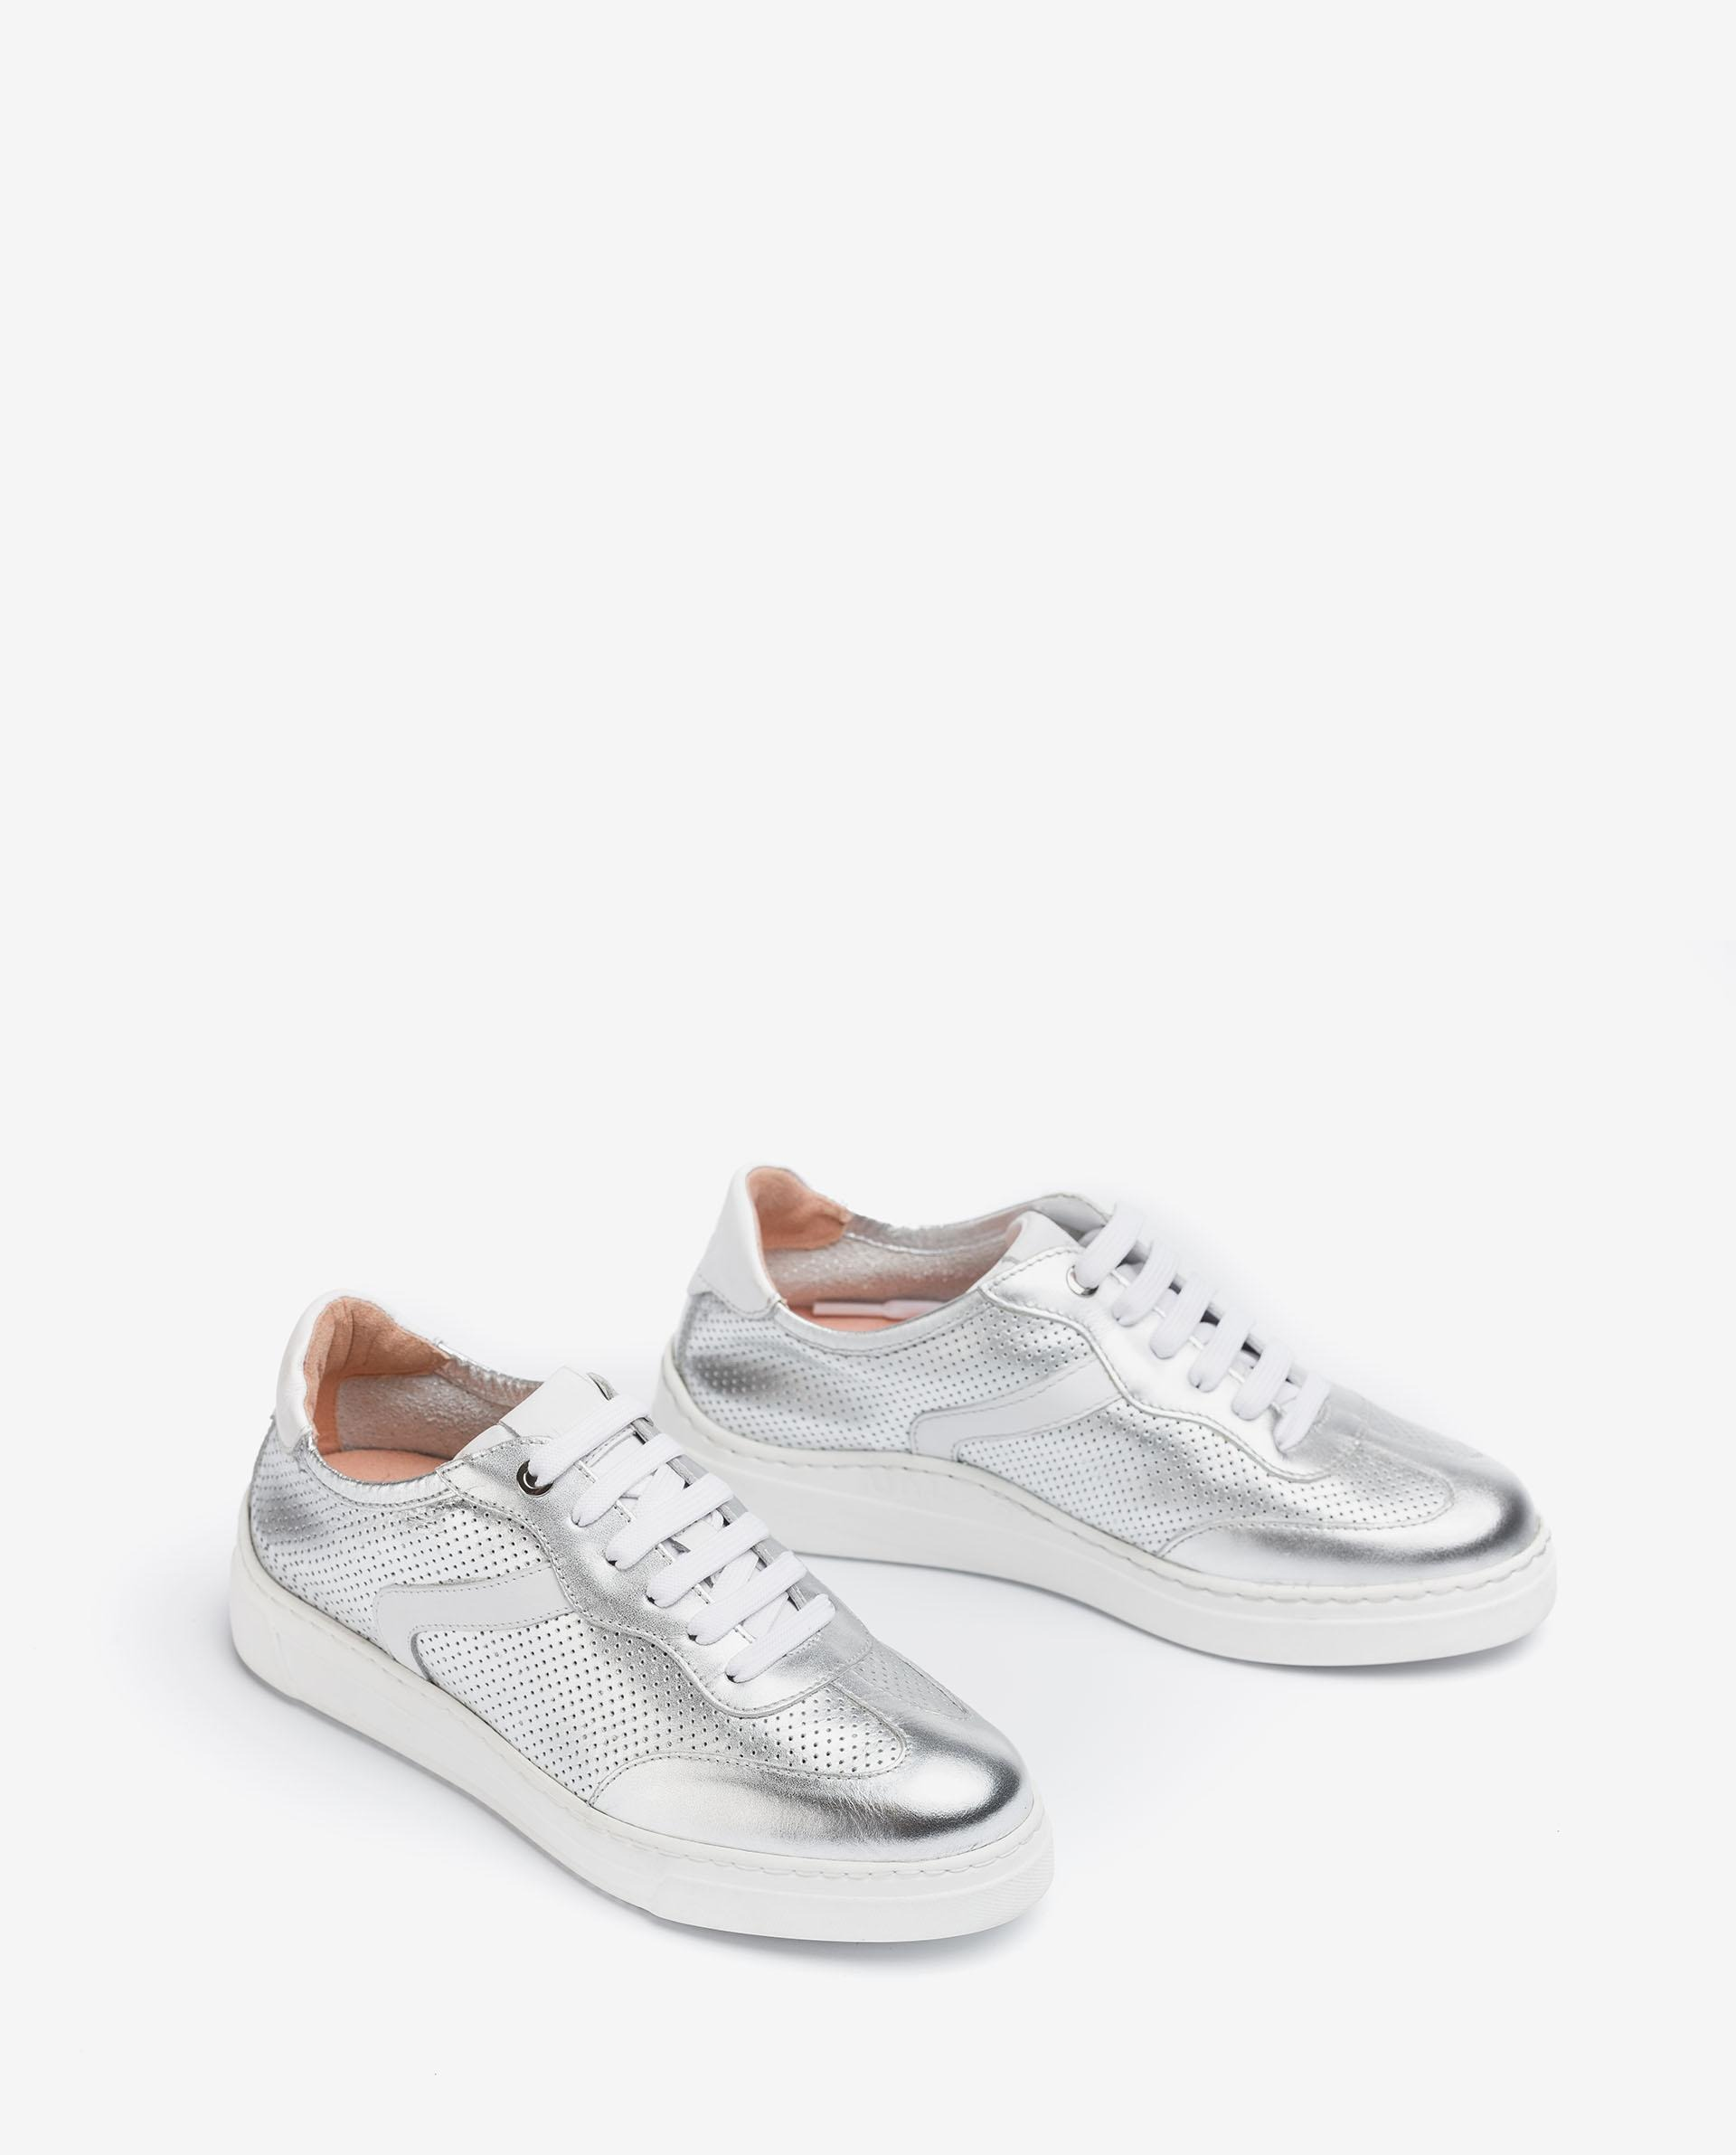 Unisa Chaussures de sport FUAD_NF SILVER/WHI